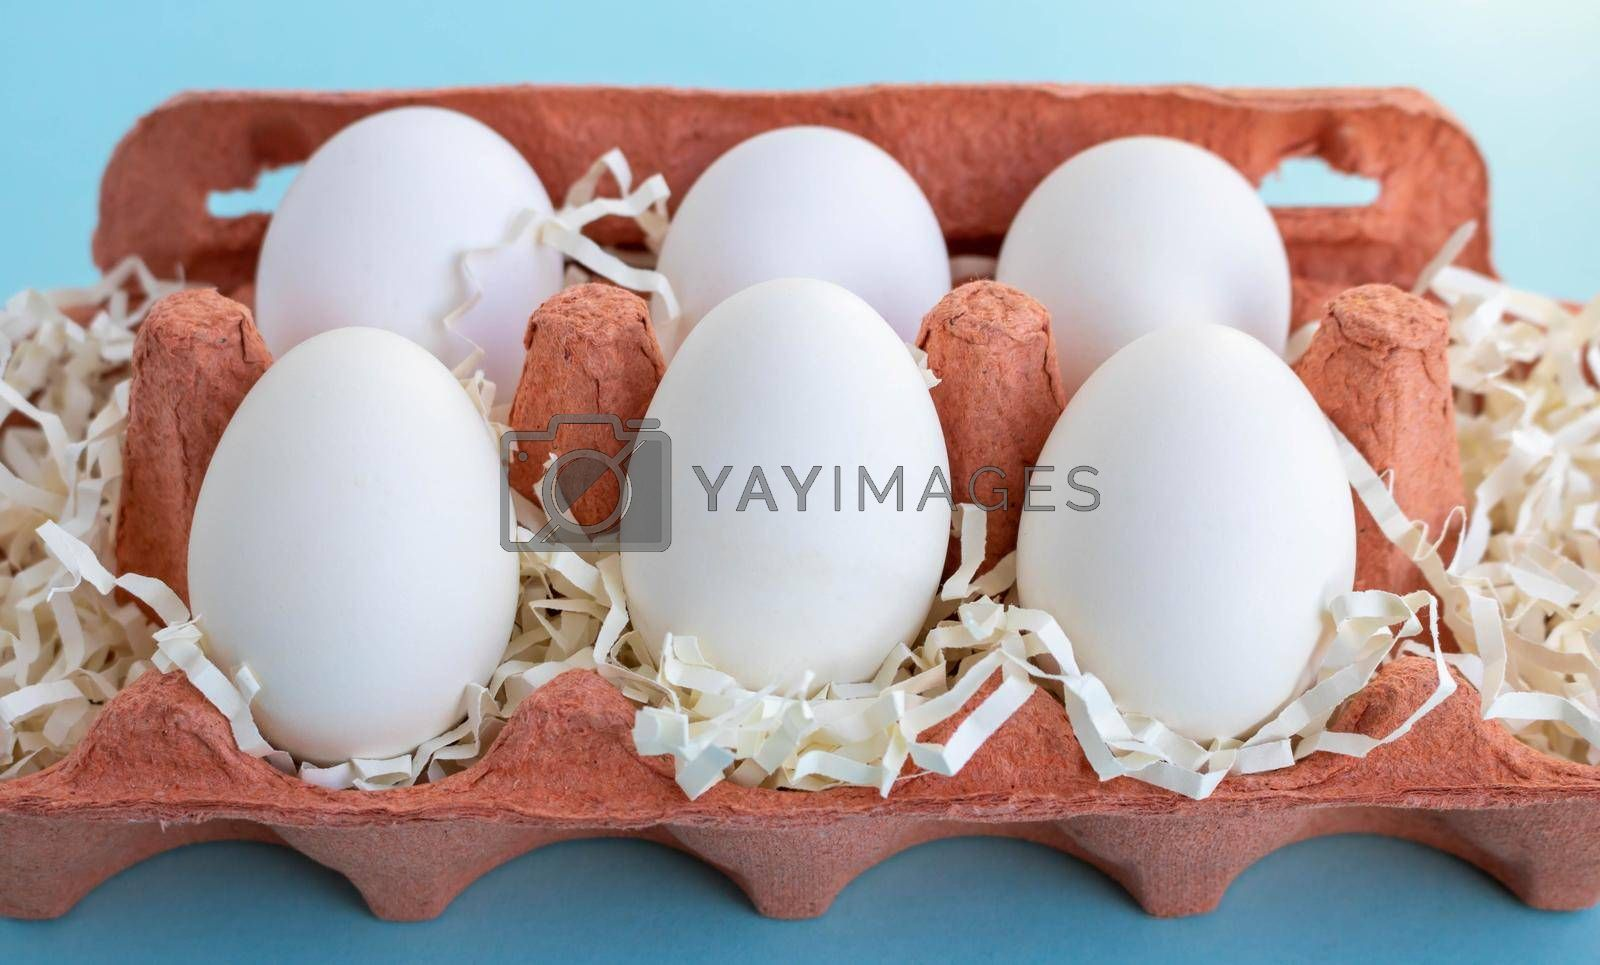 Six white fresh organic eggs in a beige eco-friendly cardboard egg container on a blue background. Easter concept, ecology, zero waste by lapushka62